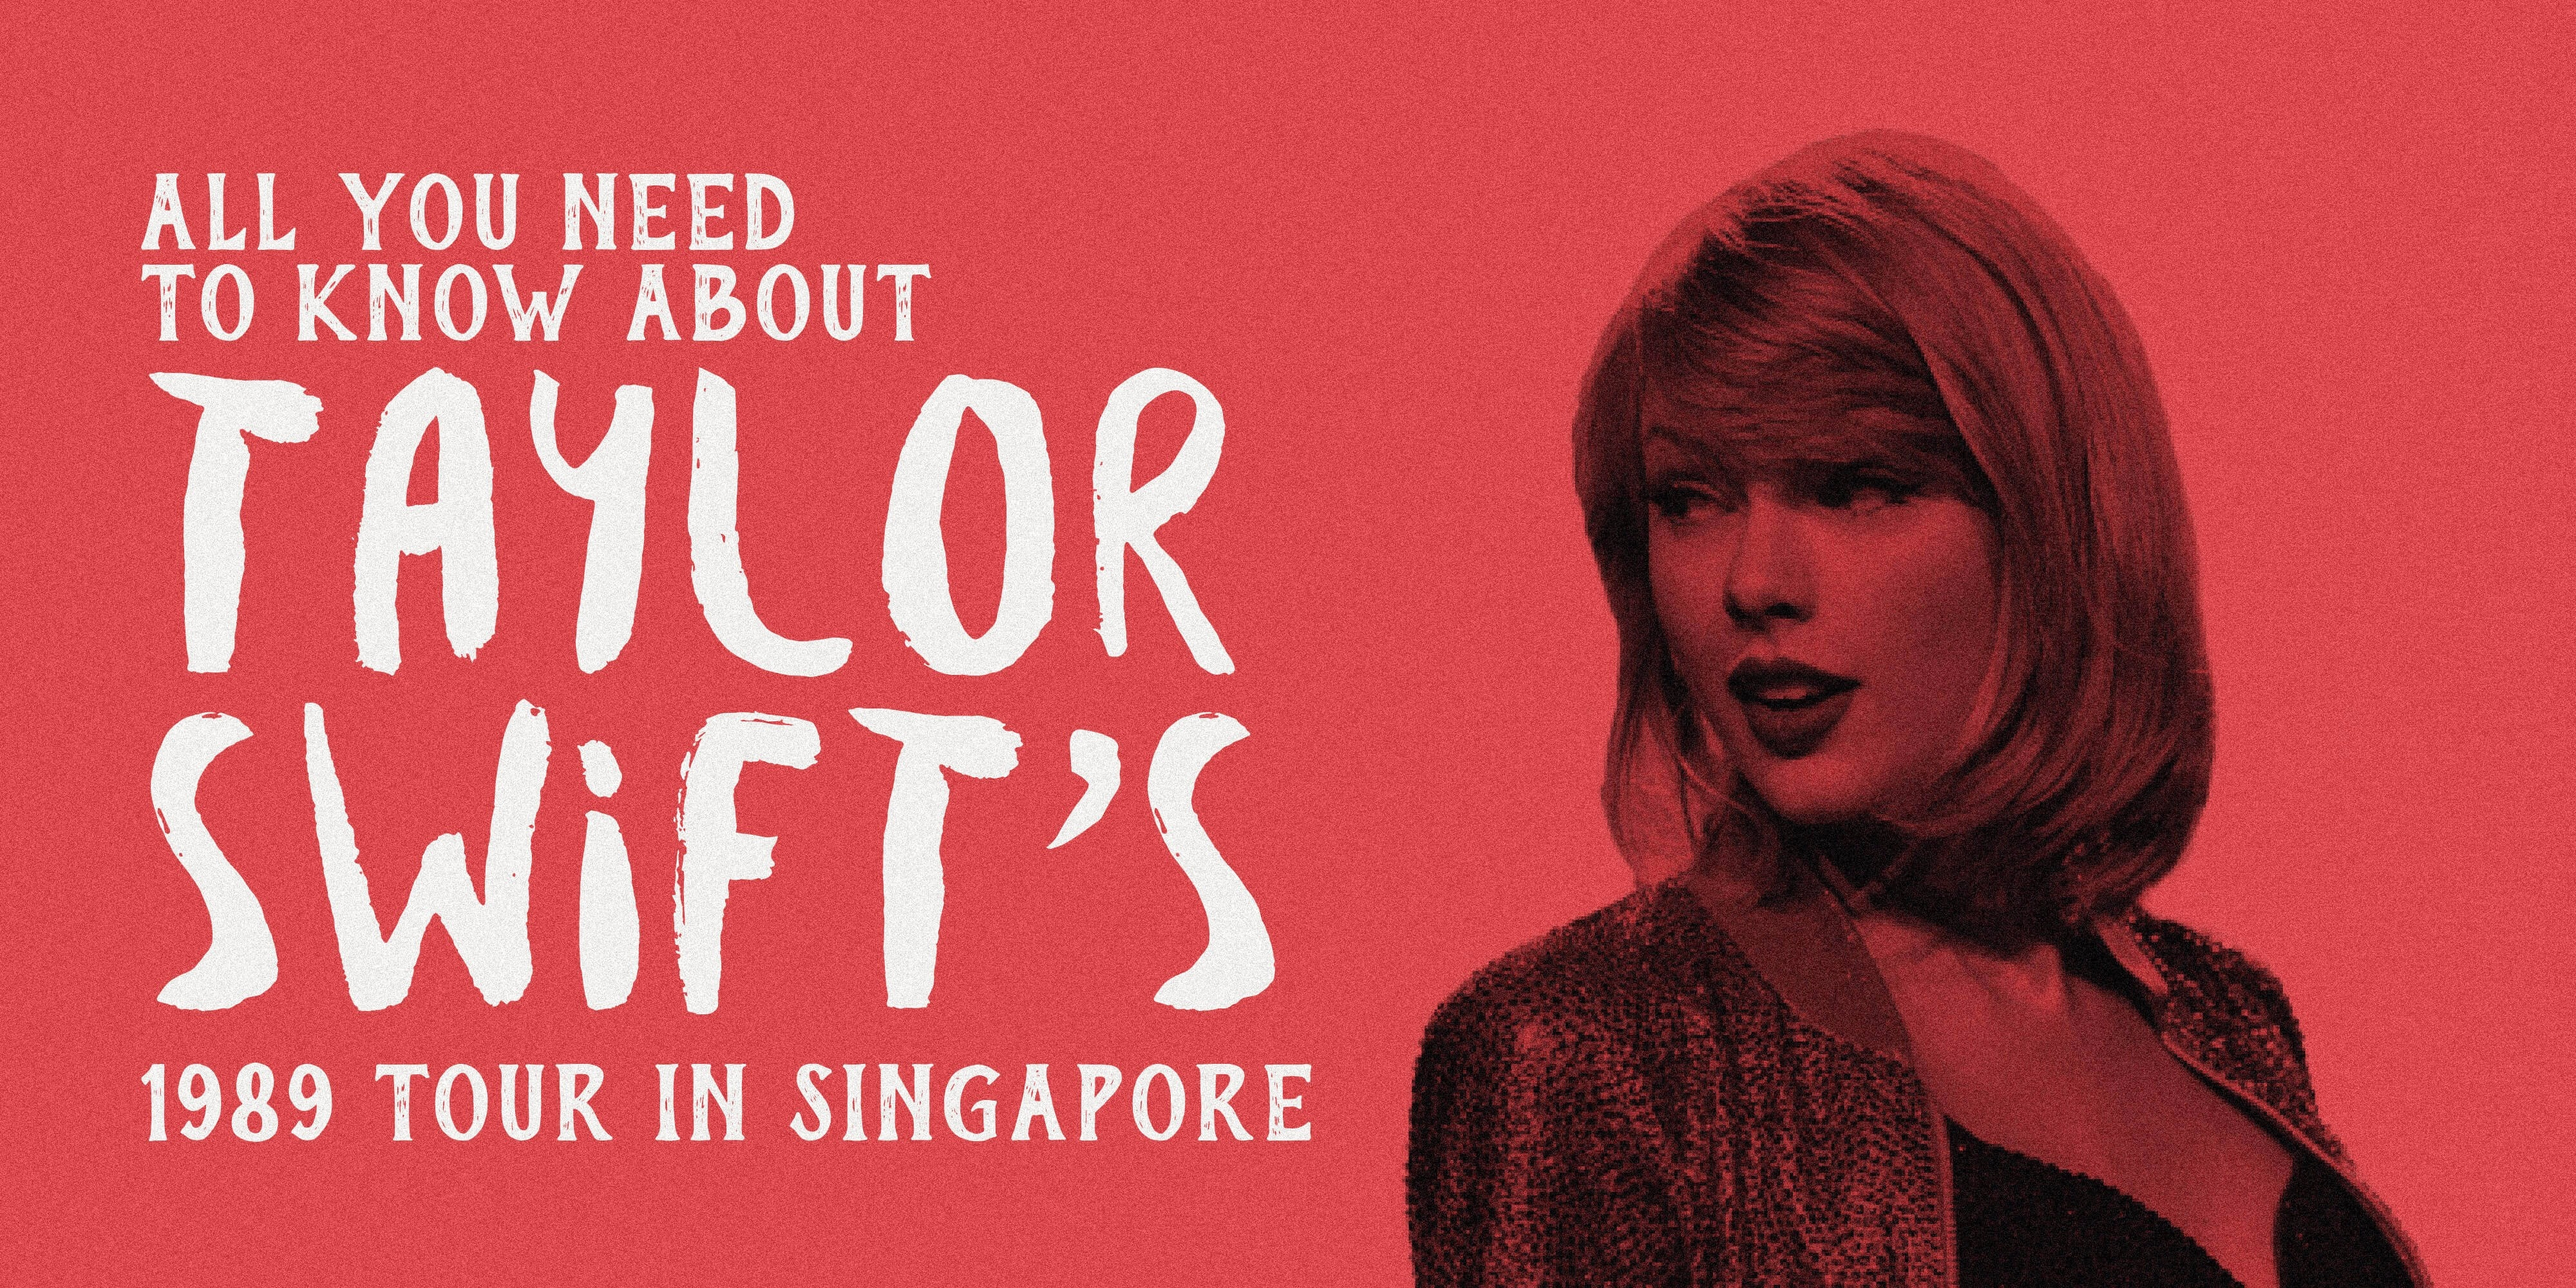 All You Need To Know About Taylor Swift's 1989 Tour in Singapore